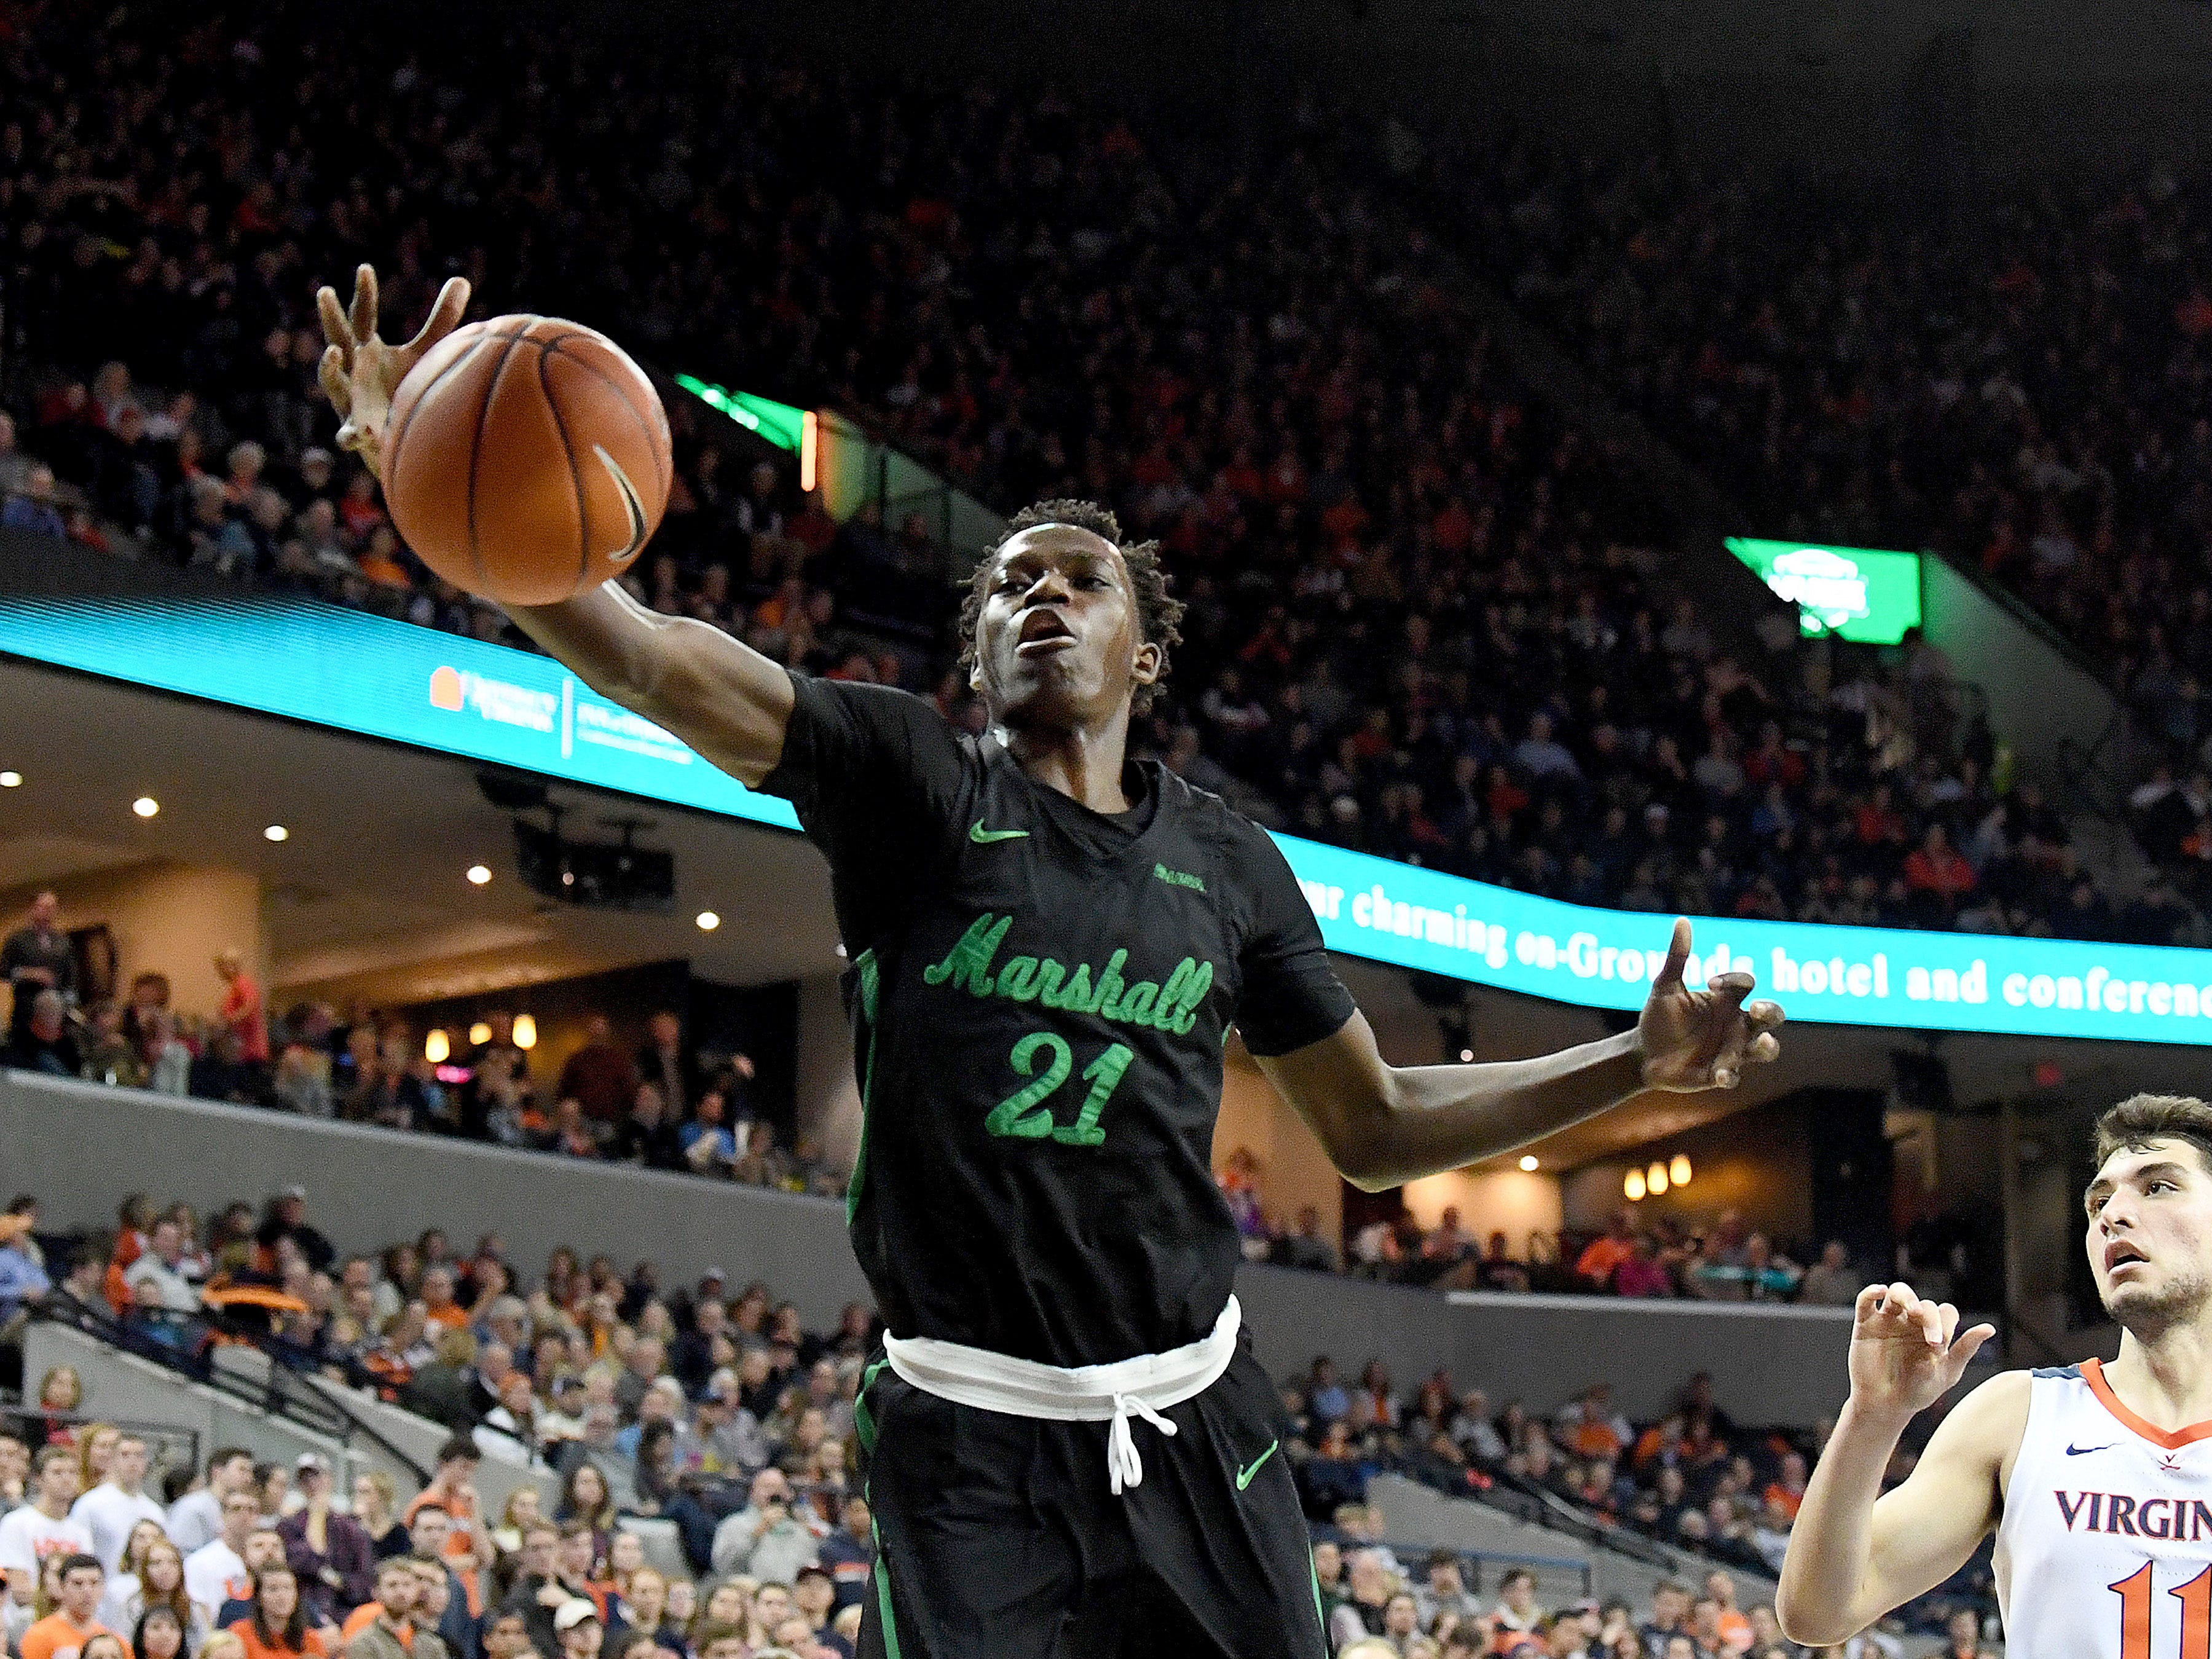 Marshall's Darius George, former R.E. Lee star, tries to snatch the rebound during their game against University of Virginia, played at the John Paul Jones Arena on Dec. 31, 2016.